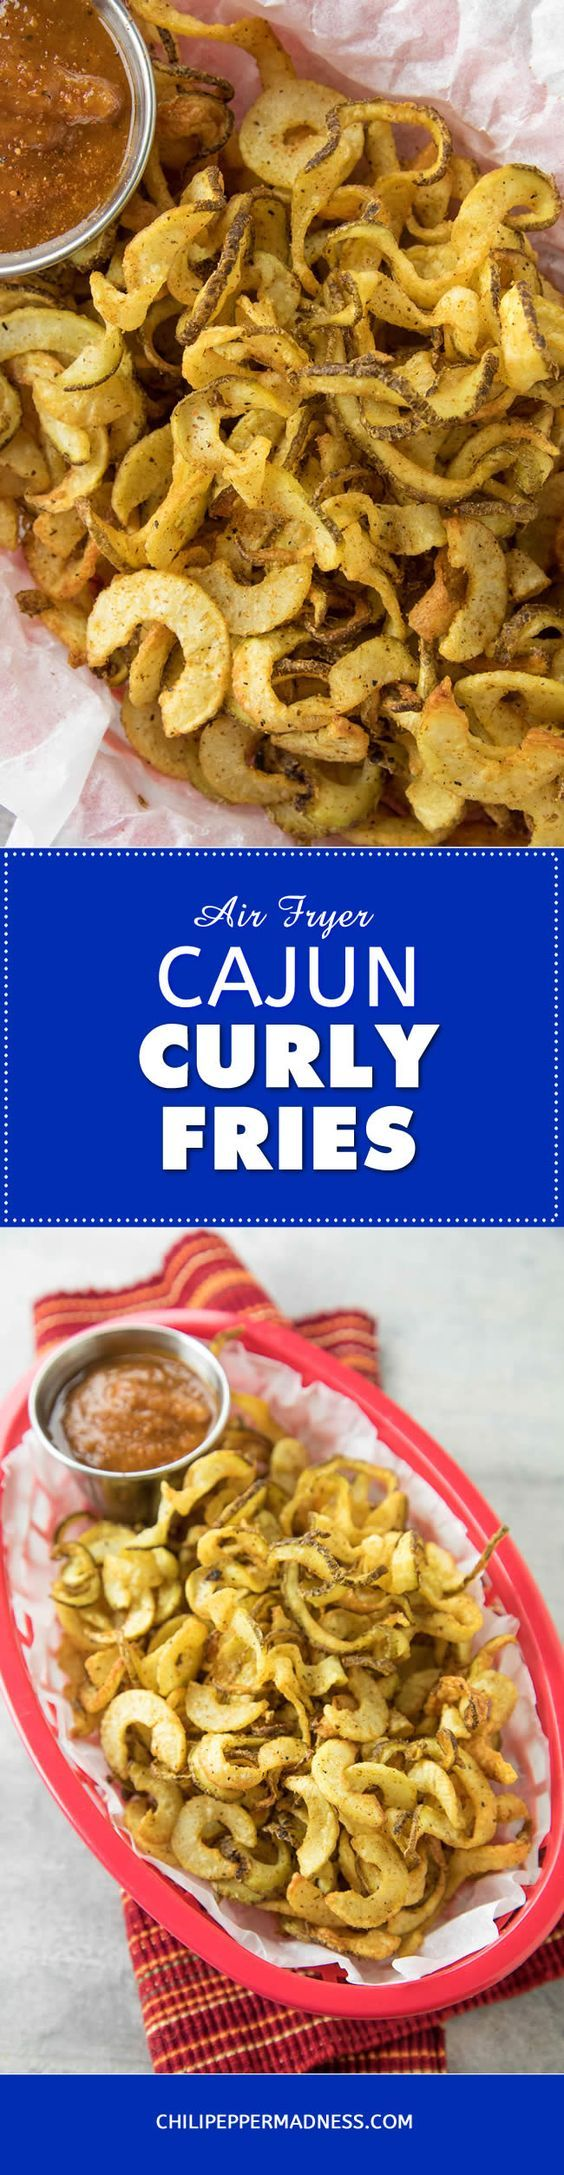 Homemade Air Fryer Cajun Curly French Fries - A recipe for crispy, crunchy seasoned curly french fries made with fresh large potatoes in an air fryer and dashed with spicy Cajun seasoning. An excellent side dish or late night snack.